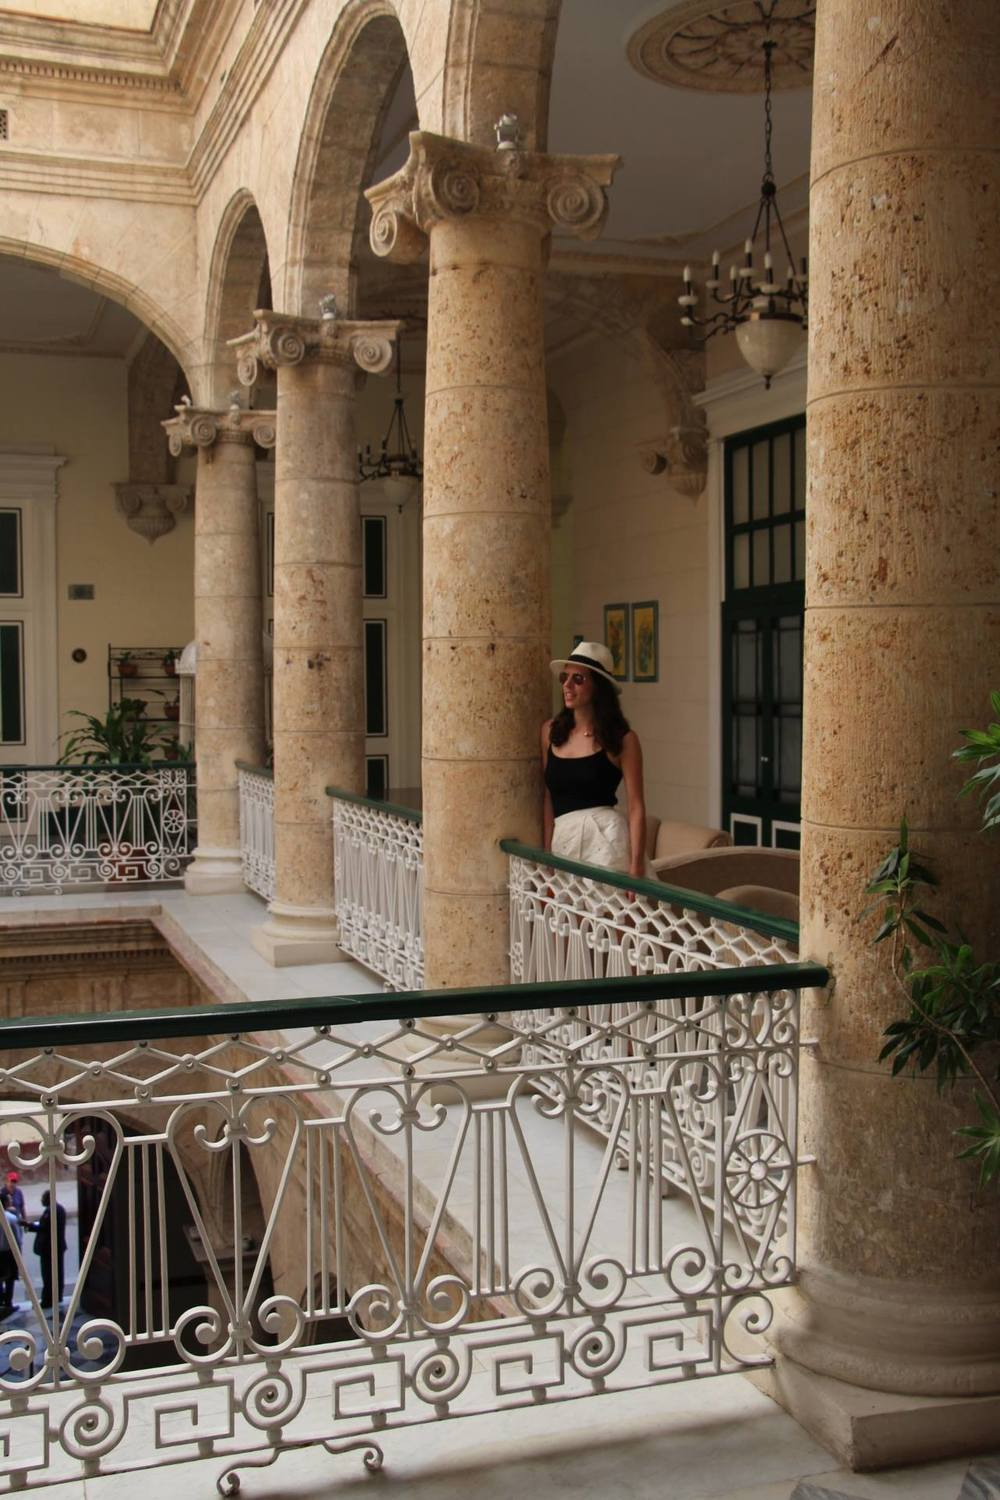 The architecture and detail within the buildings rivaled the edifices. These pictures only provide glimpses into the splendor and lavishness that must have been the Cuba of old.